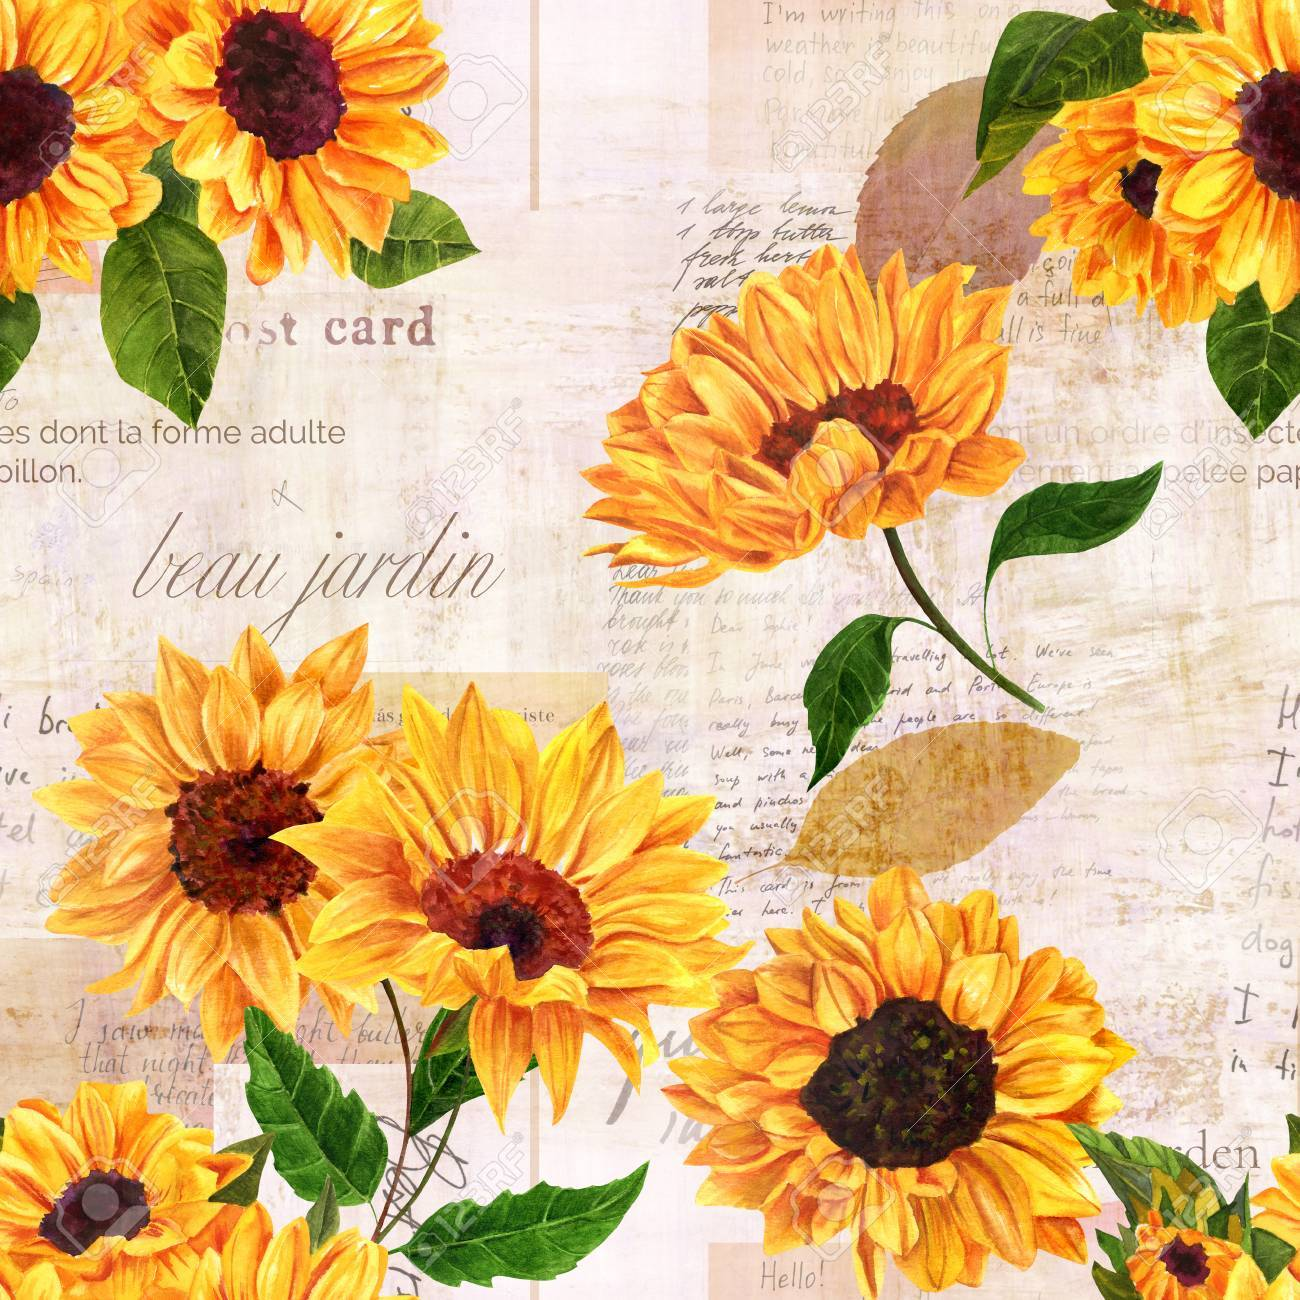 Yellow Flower 6x8 FT Backdrop Photographers,Watercolor Style Sunflowers Pattern with Faded Blossoms Botany Bouquet Background for Baby Birthday Party Wedding Vinyl Studio Props Photography